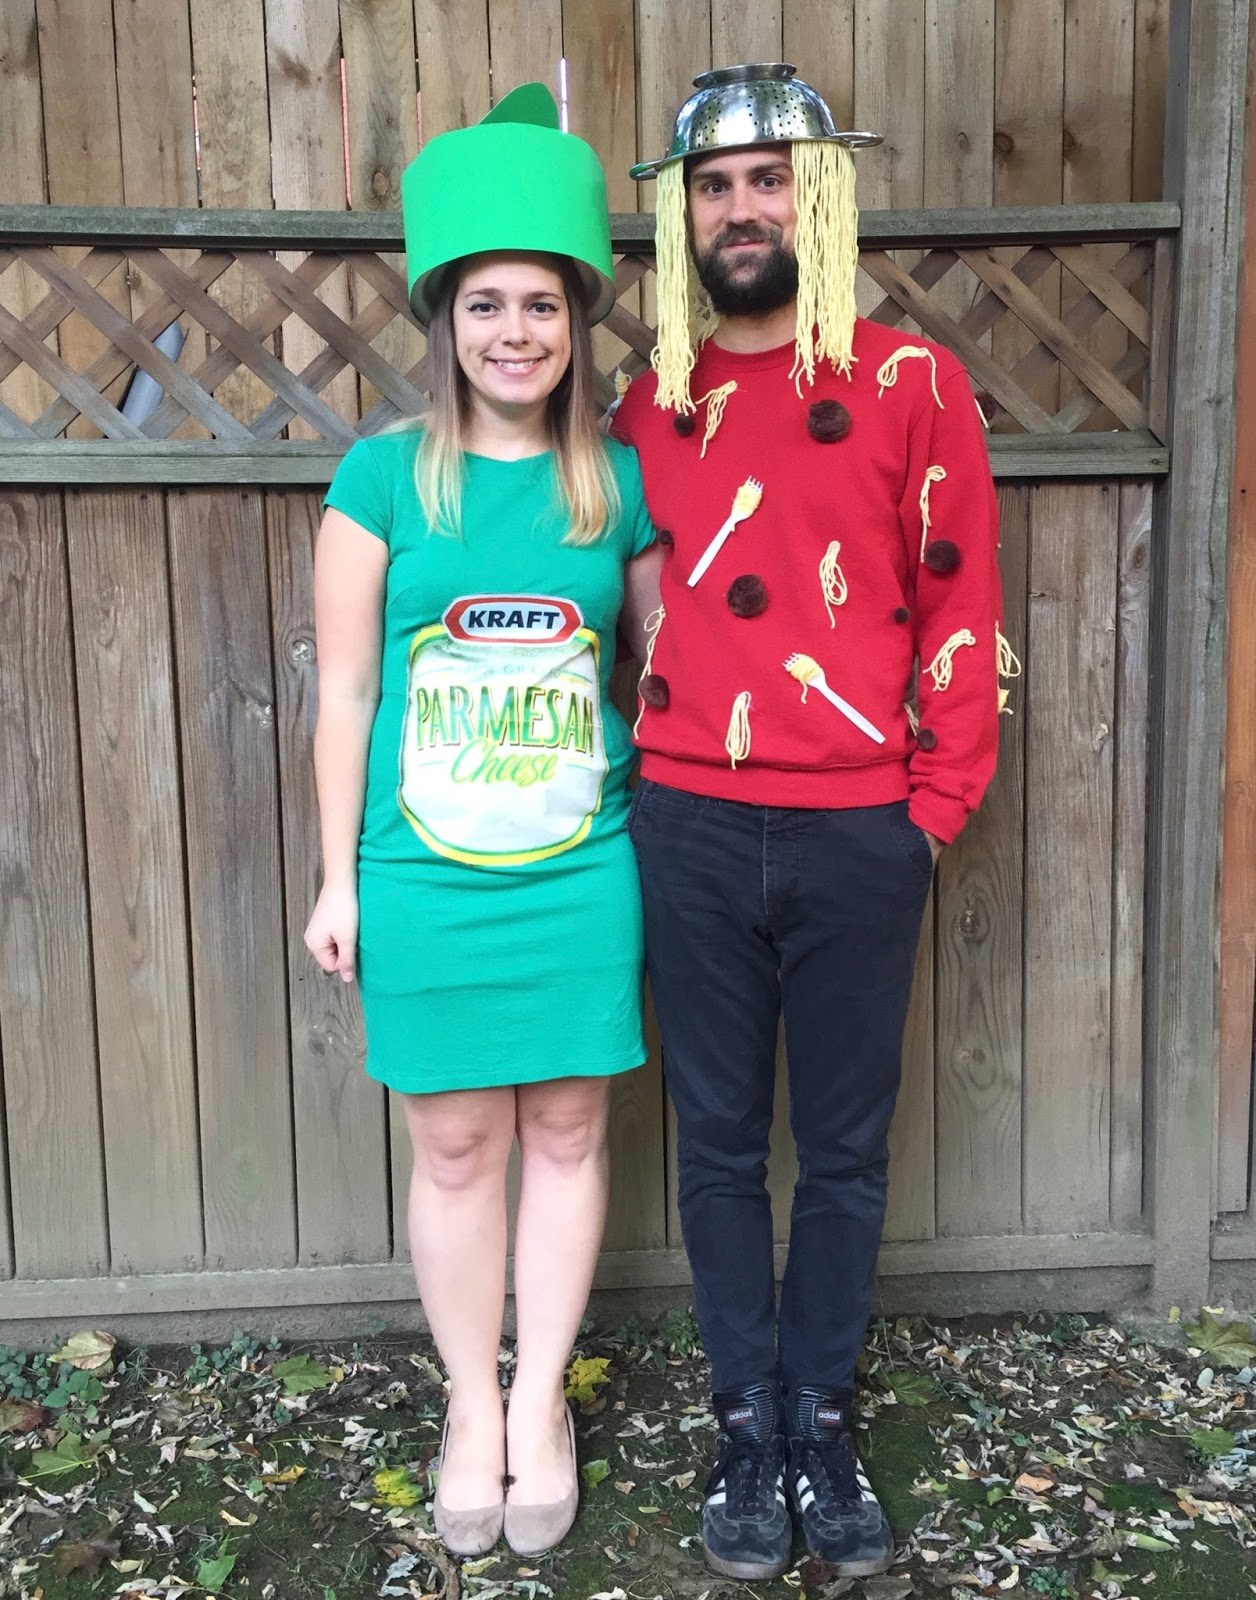 Halloween Costumes For 4 Friends.Our Halloween Costumes Spaghetti Parmesan Cheese The